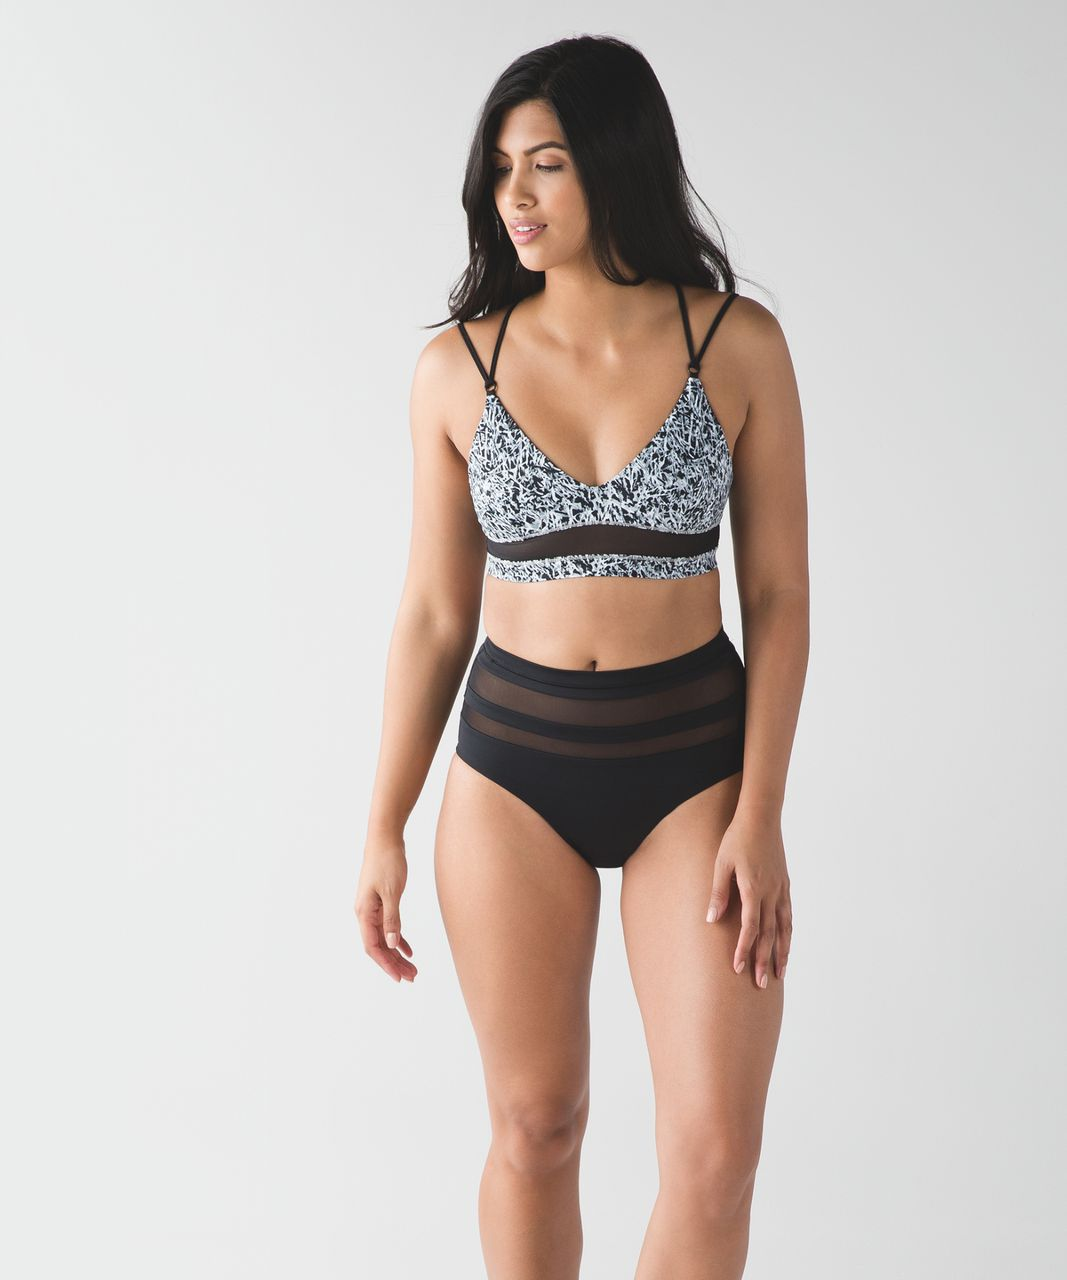 Lululemon Go With The Flow Top - Mini Ripple White Seal Grey / Black